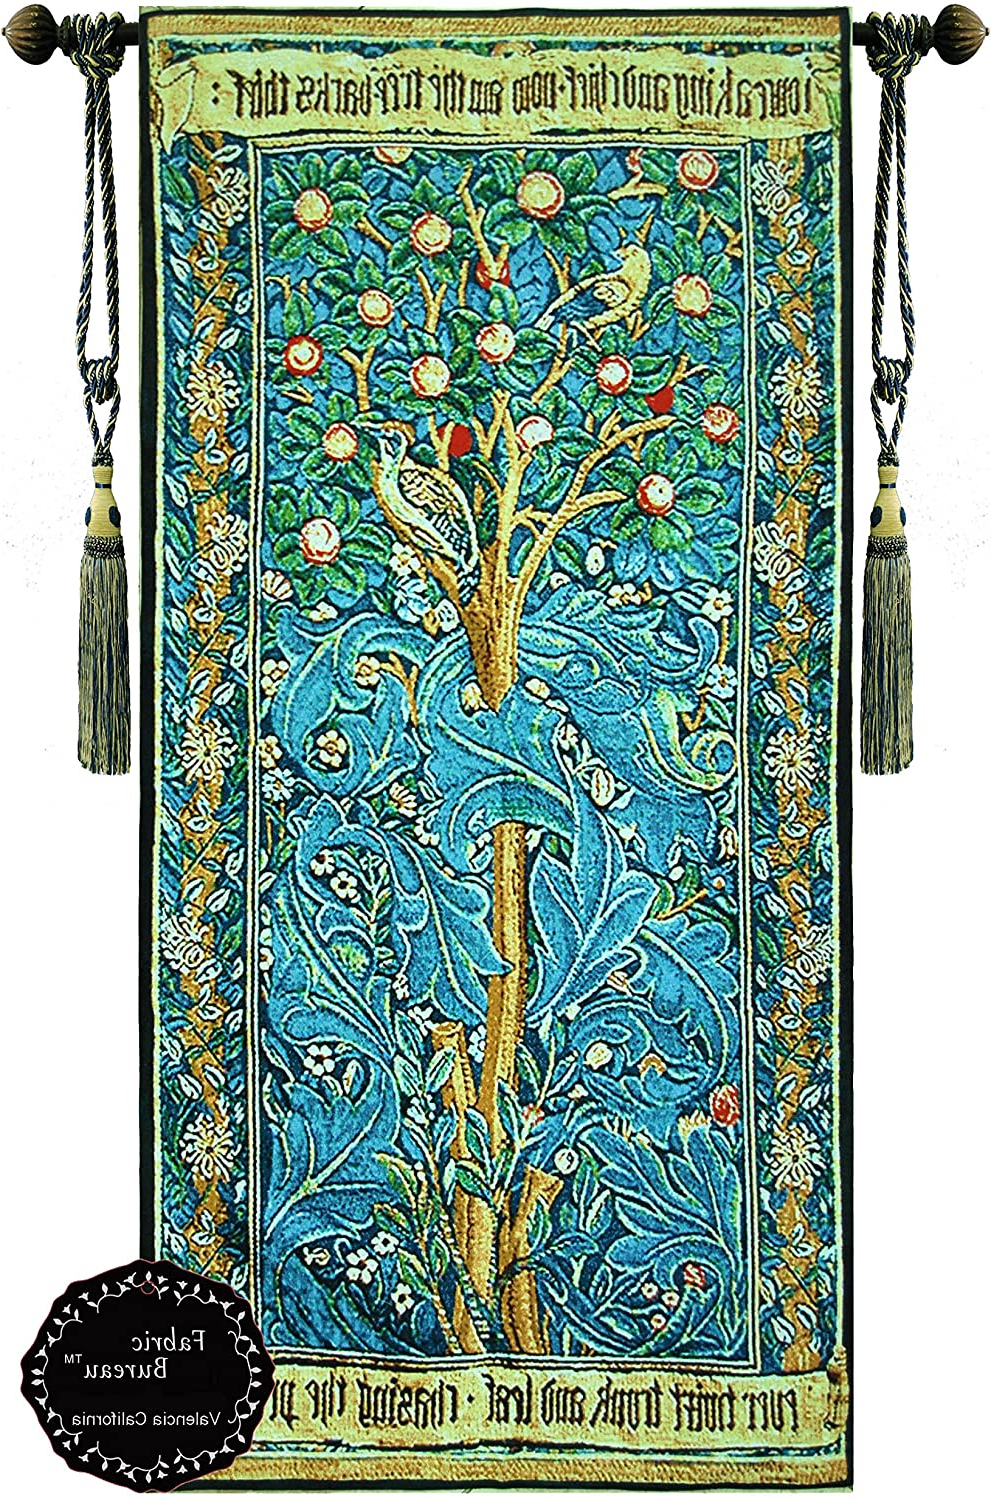 Well Liked Blended Fabric Woodpecker European Tapestries With Regard To Beautifulthe Woodpeckerwilliam Morris Fine Tapestry Jacquard Woven Wall Hanging Art Decor (yw69) (View 3 of 20)